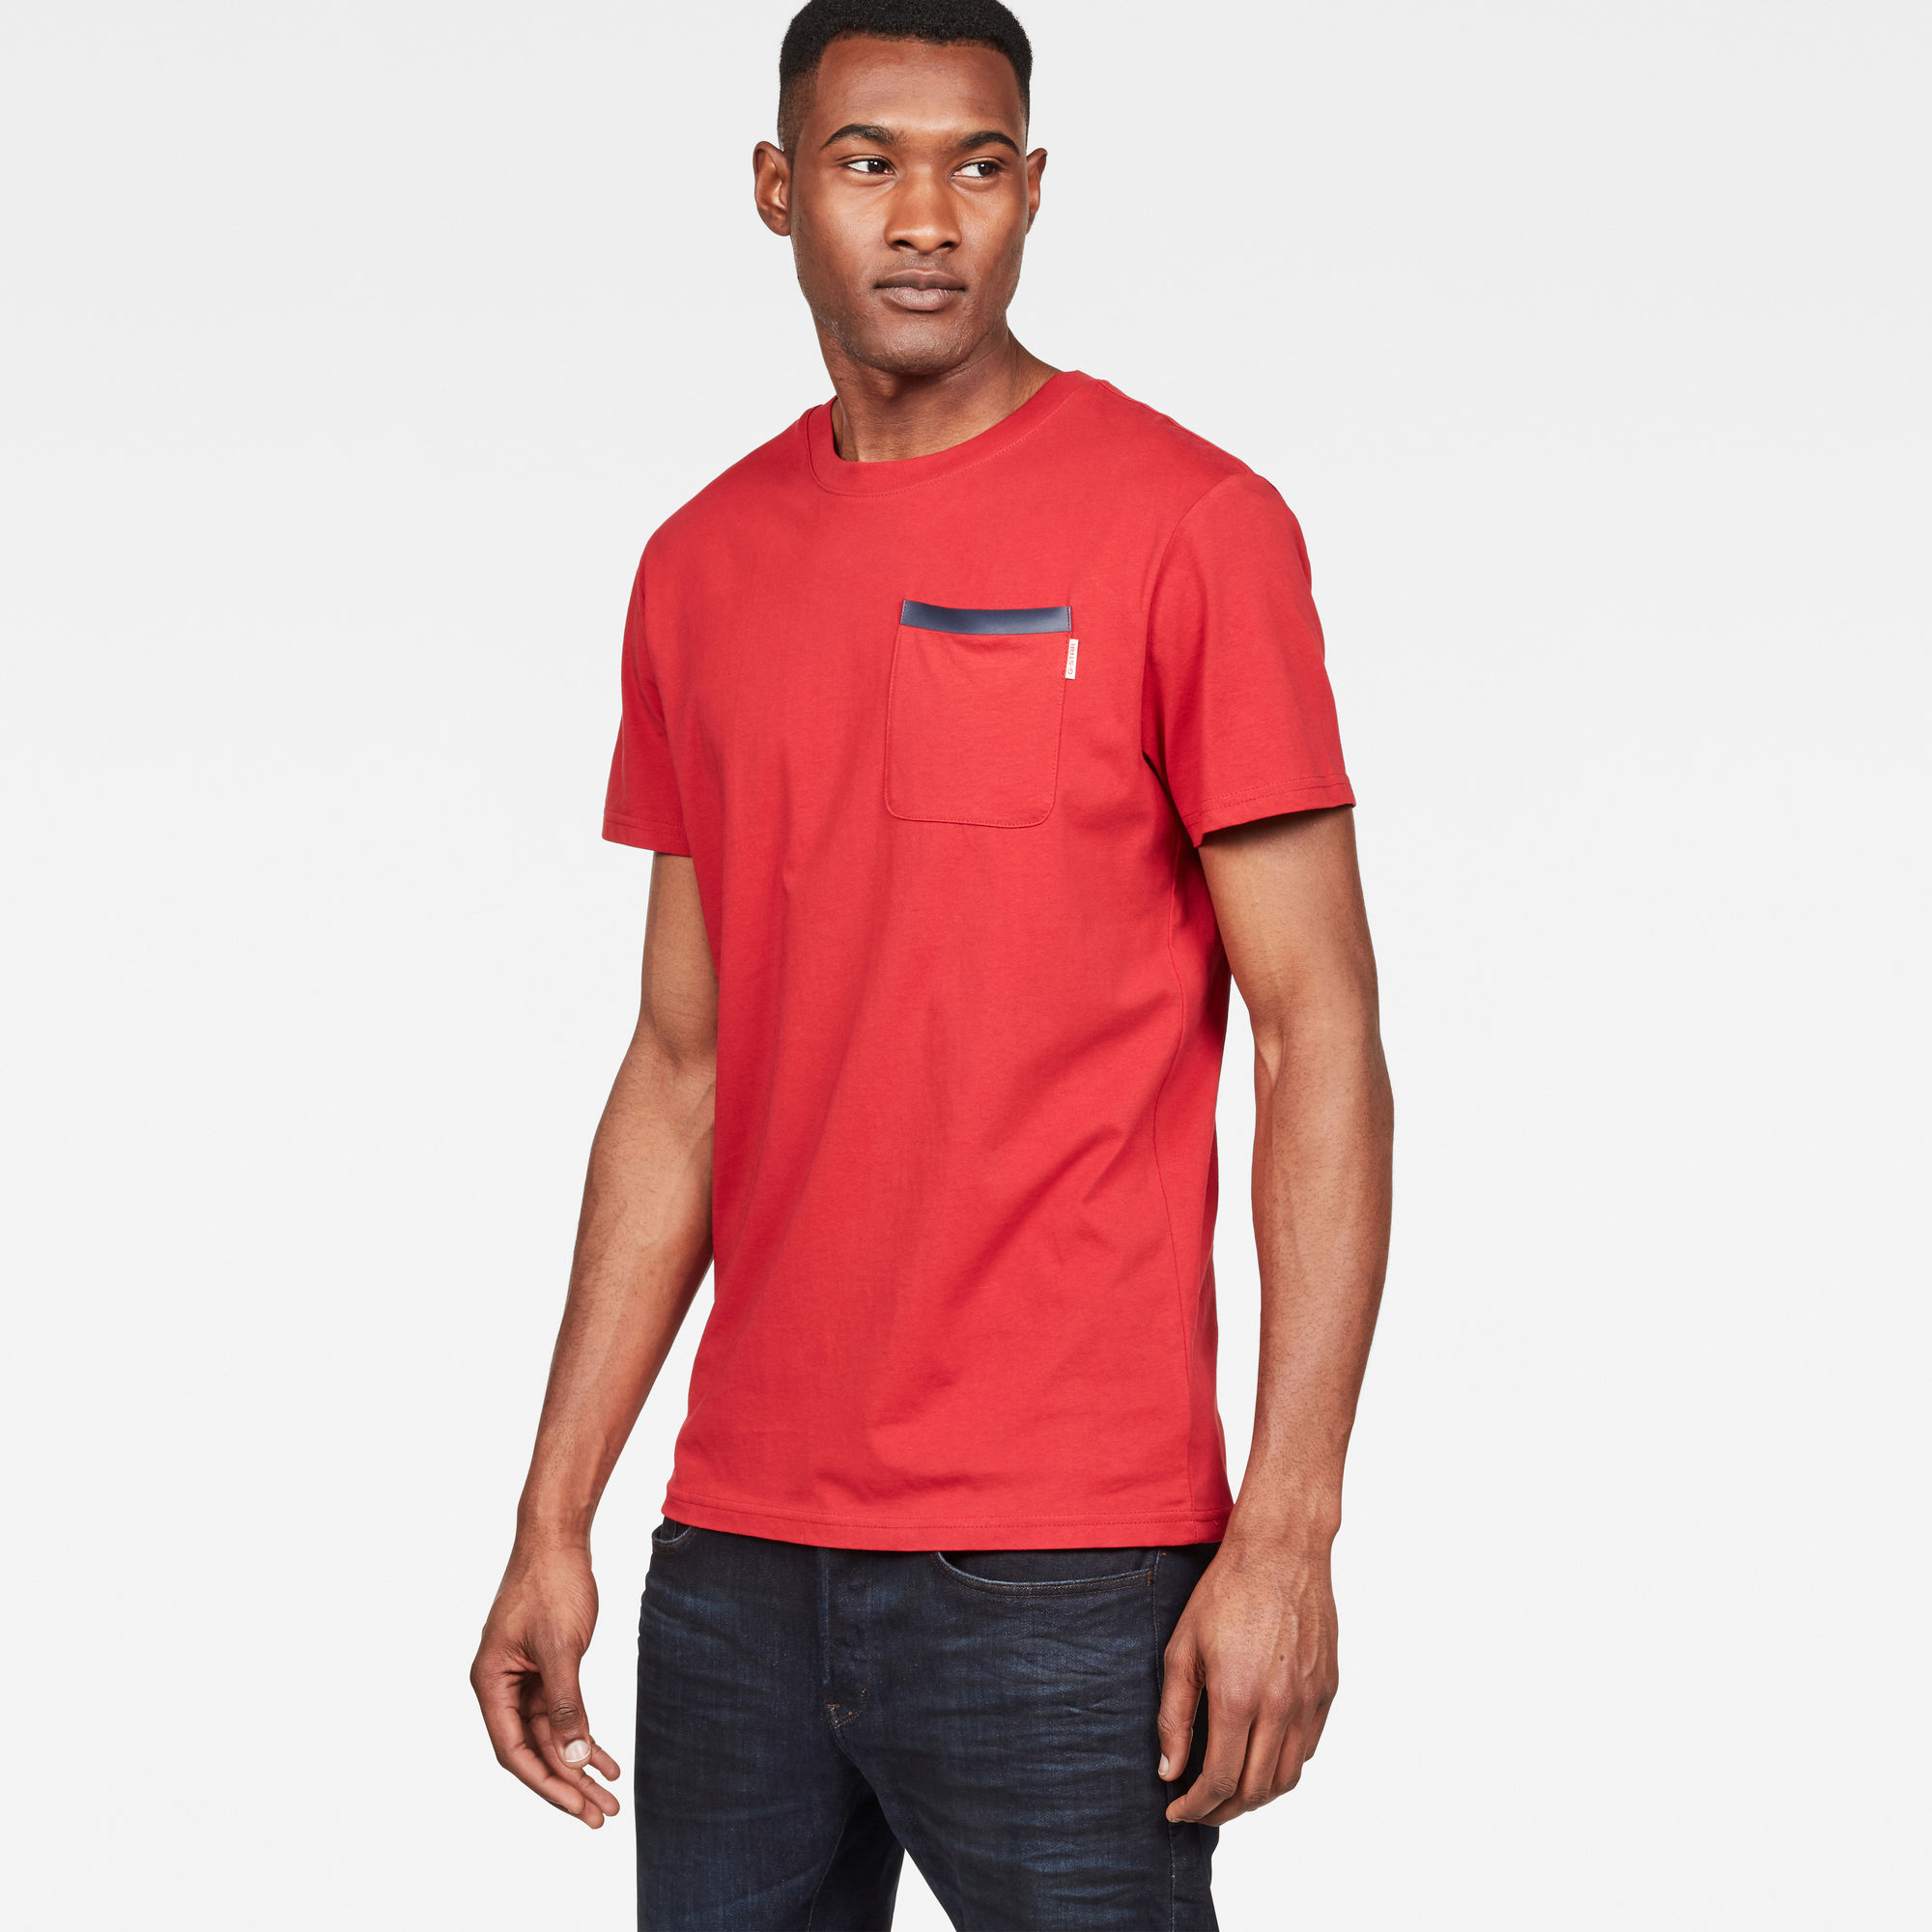 G-Star RAW Graphic 19 Pocket T-shirt